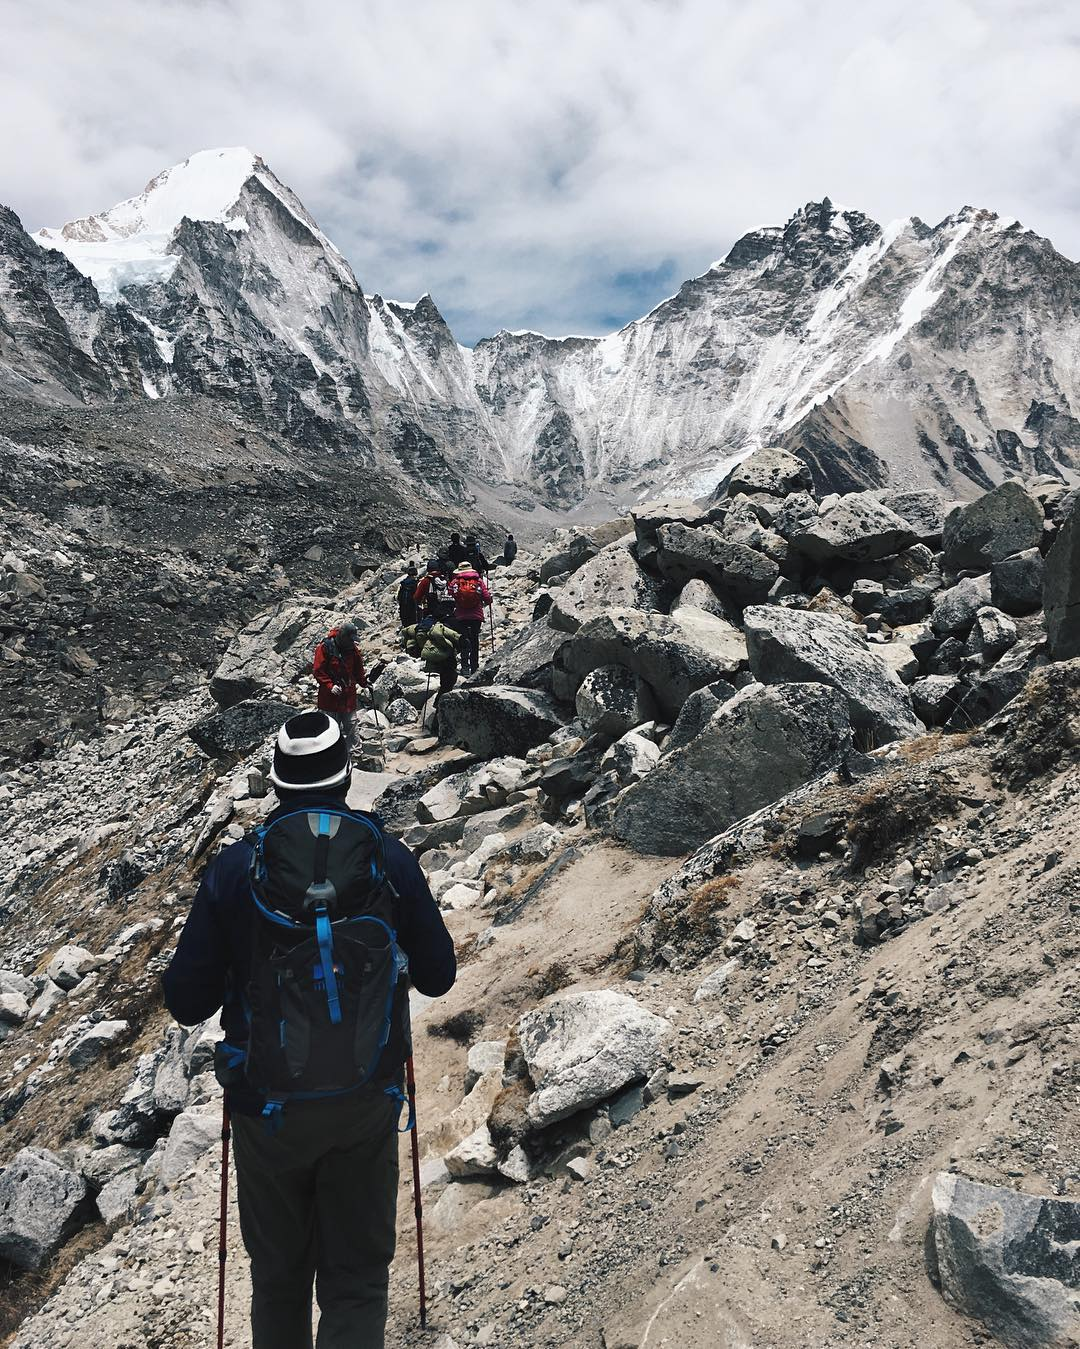 Trekking to Everest Base Camp with the Salute. Thanks Brendan! #MHMgear #PacksElevated #Everest #EverestBaseCamp